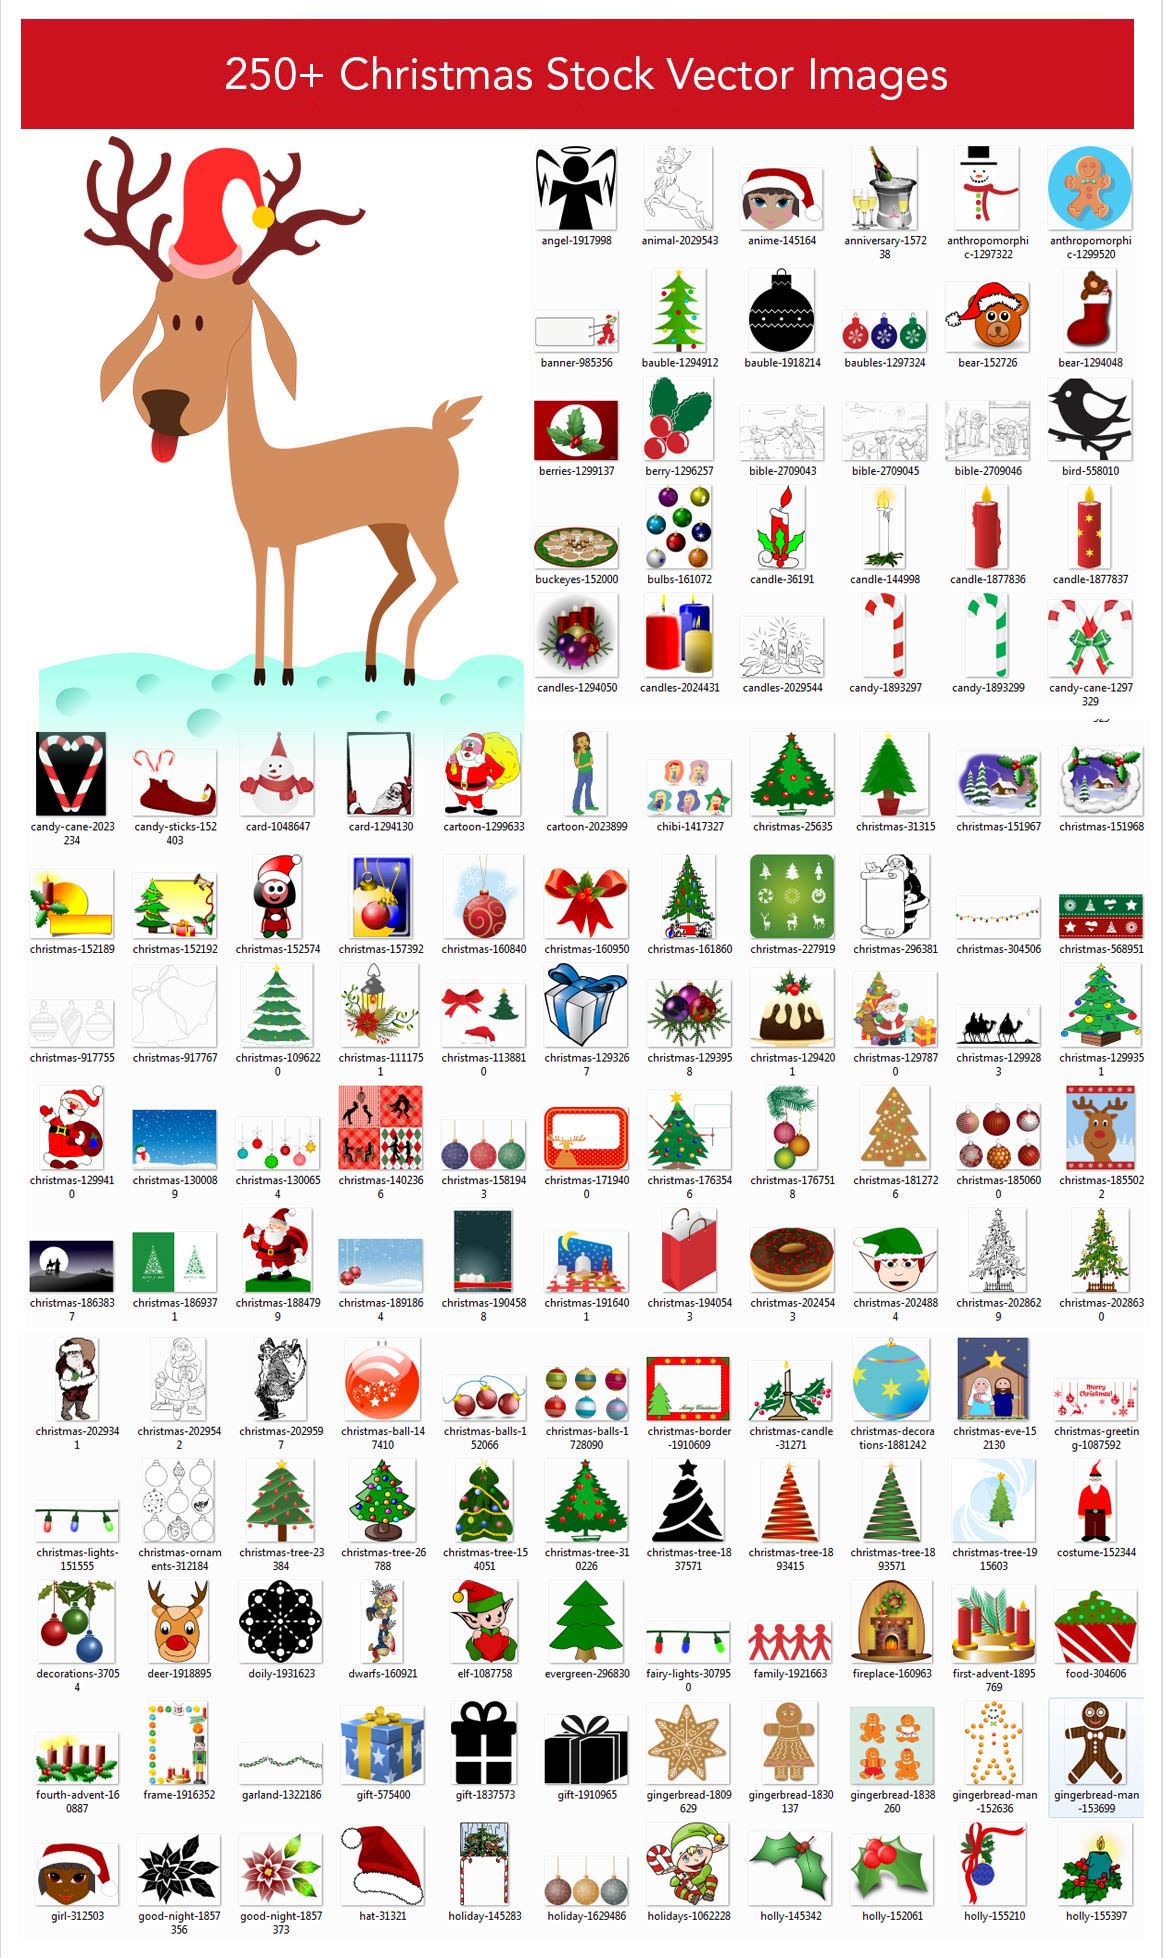 250+ Christmas Stock Vector Images